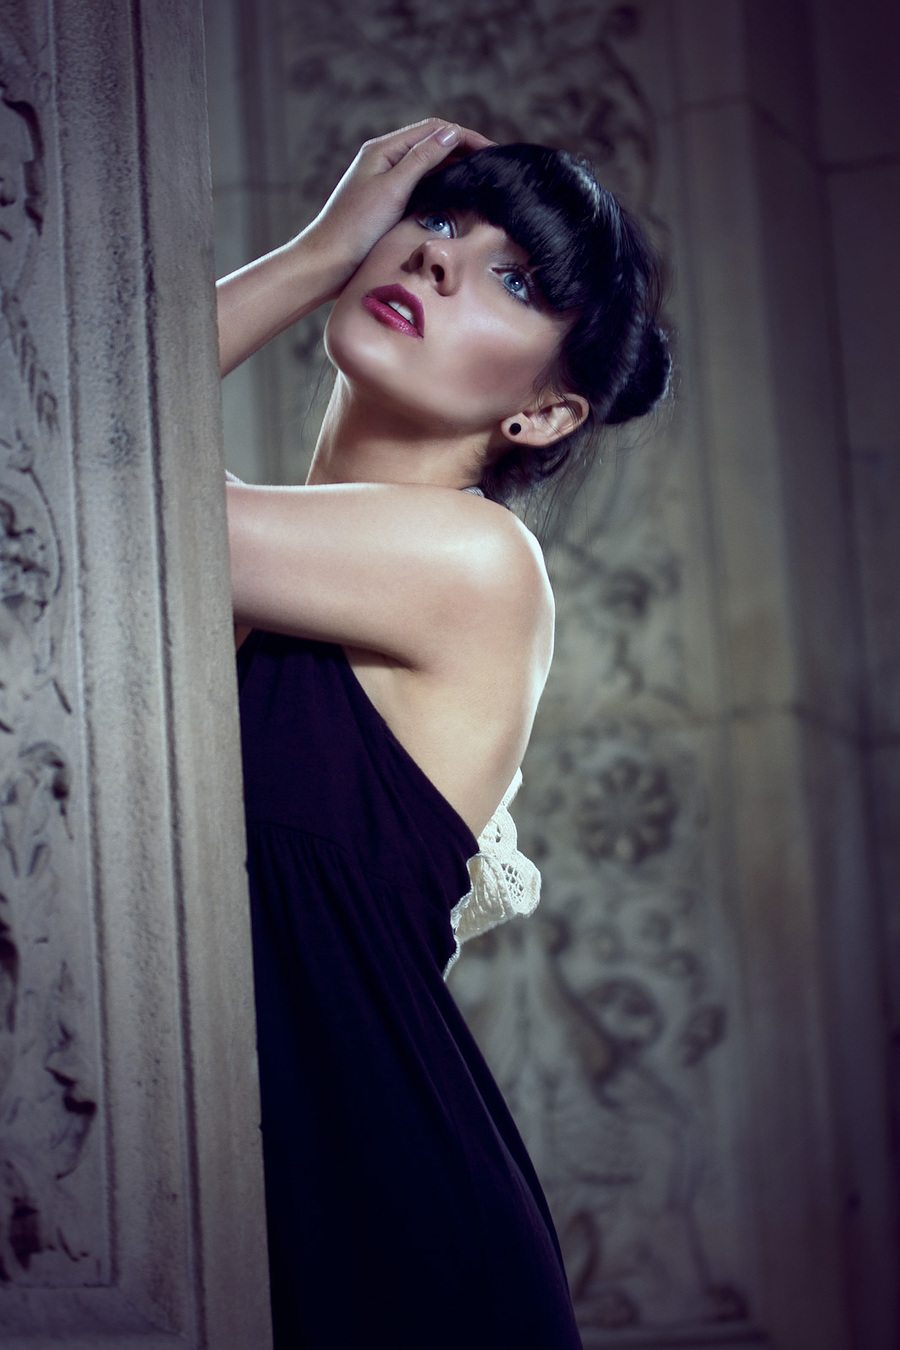 Classic beauty / Photography by David Long, Model Holly Stone Model / Uploaded 12th July 2012 @ 09:38 PM